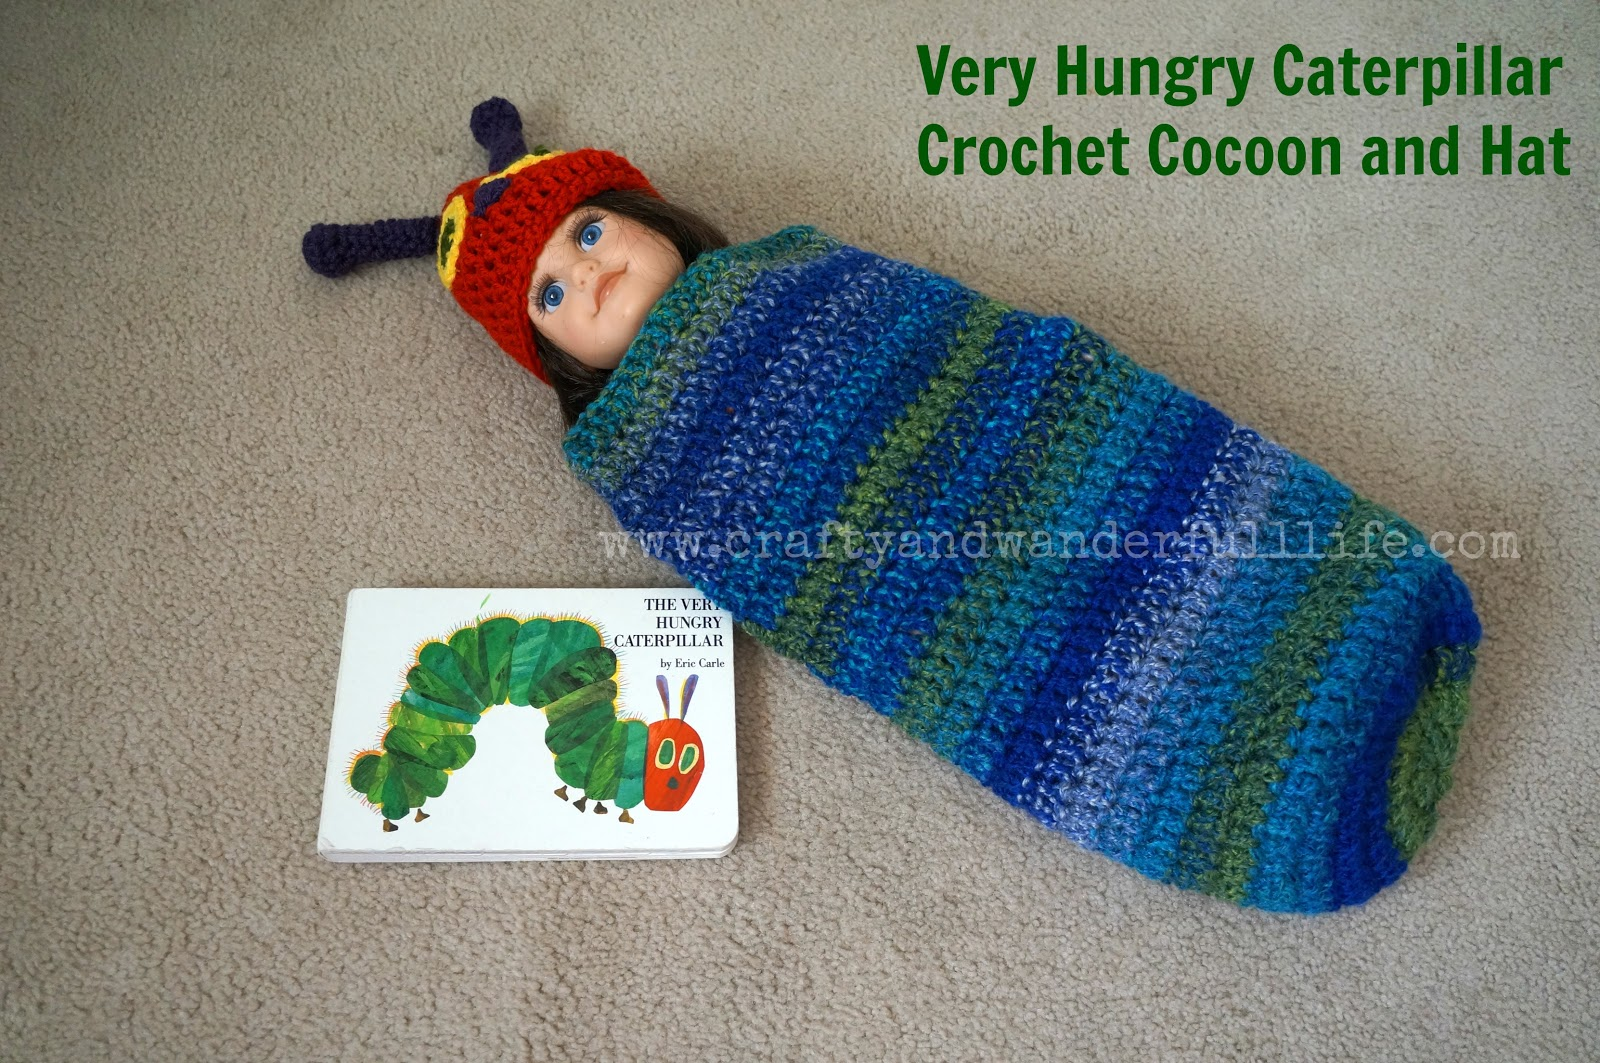 Crafty And Wanderfull Life: Crochet: Very Hungry Caterpillar Cocoon ...